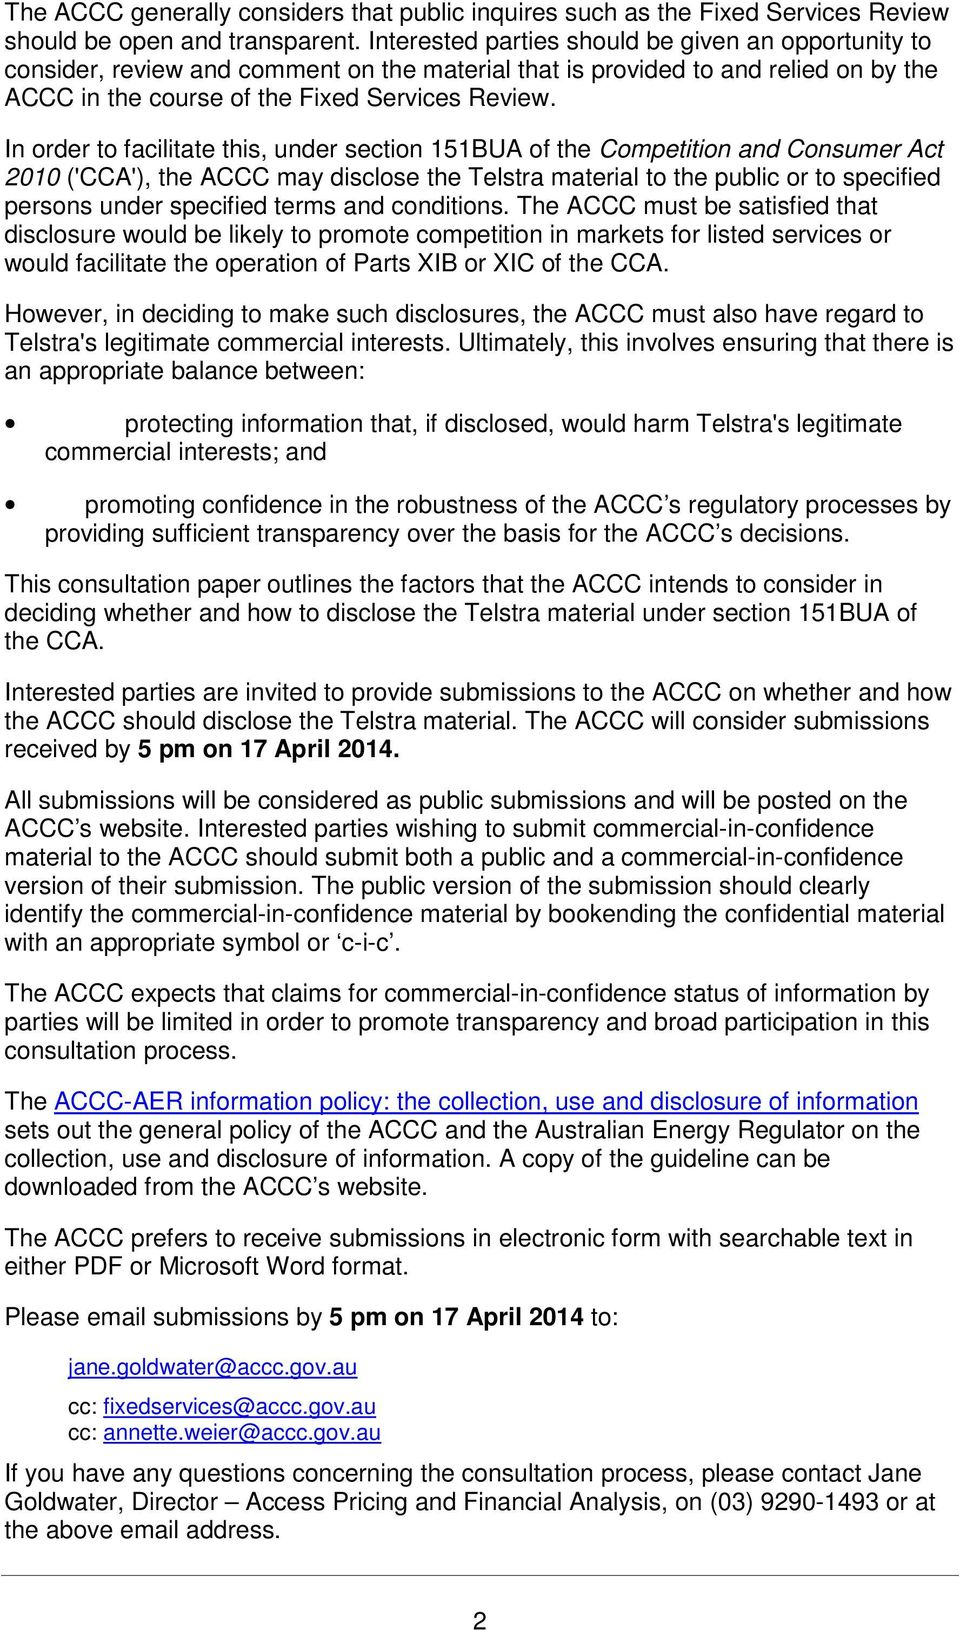 In order to facilitate this, under section 151BUA of the Competition and Consumer Act 2010 ('CCA'), the ACCC may disclose the Telstra material to the public or to specified persons under specified